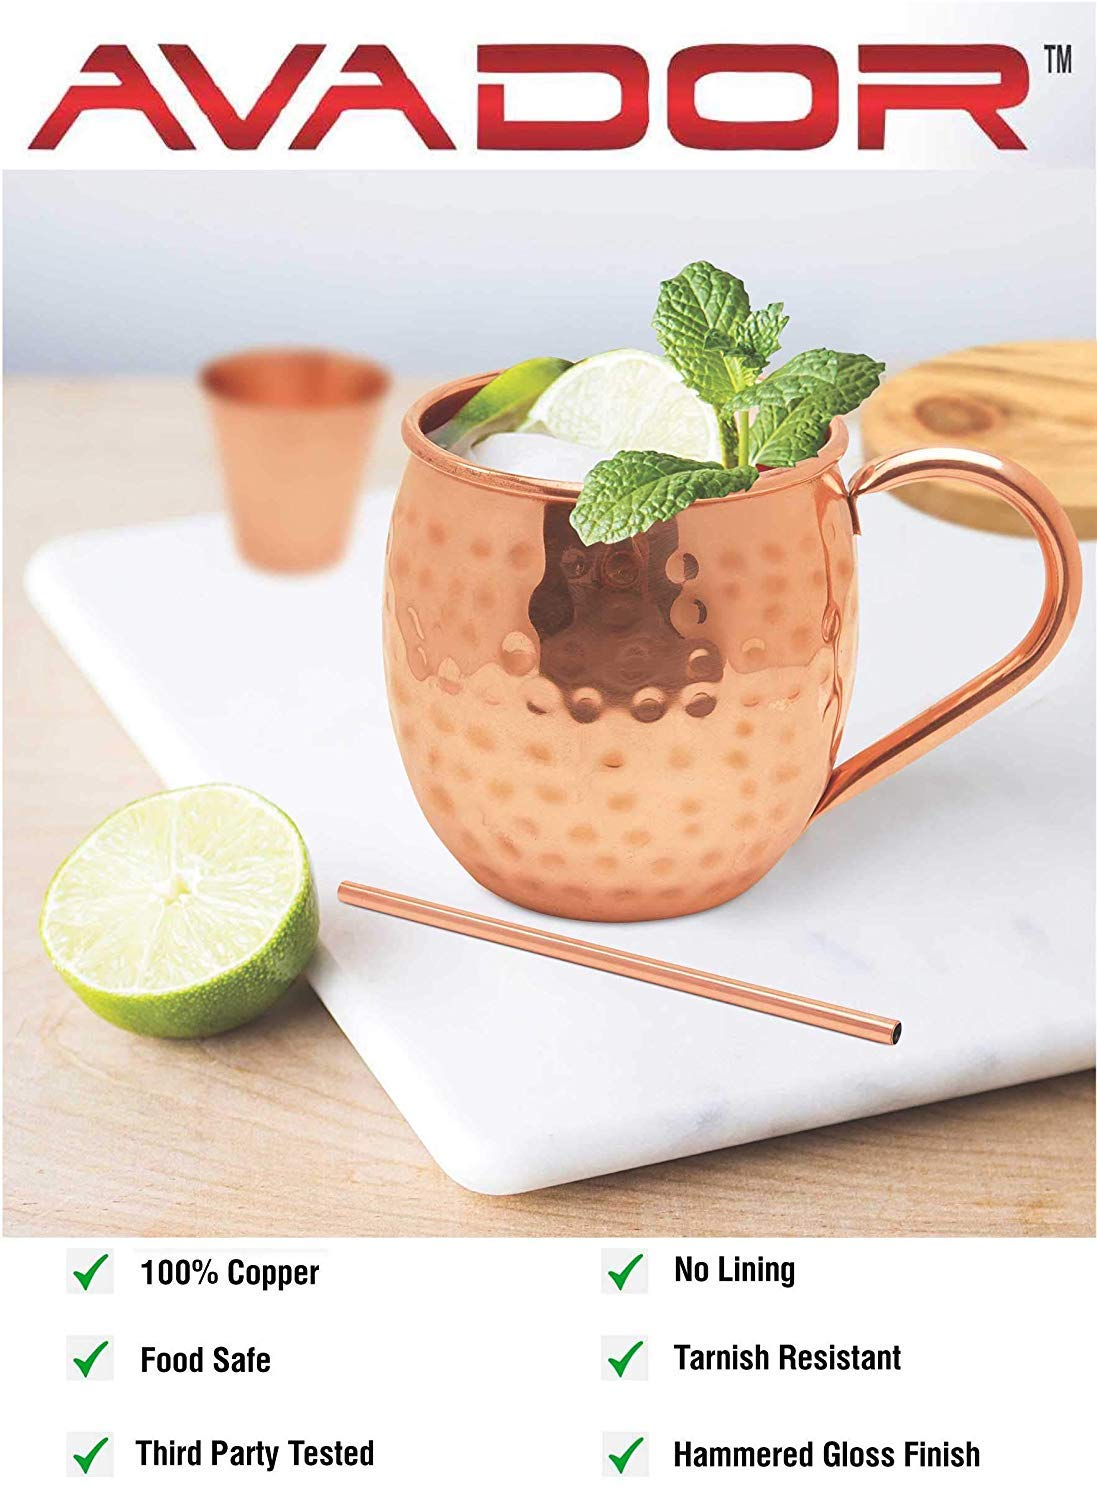 AVADOR Set of 4 Handcrafted 100% Pure Copper Moscow Mule Mugs Hammered Finish 16 Oz. Gift Set Boxed with Shot Glass and Copper Straws by Avador (Image #2)